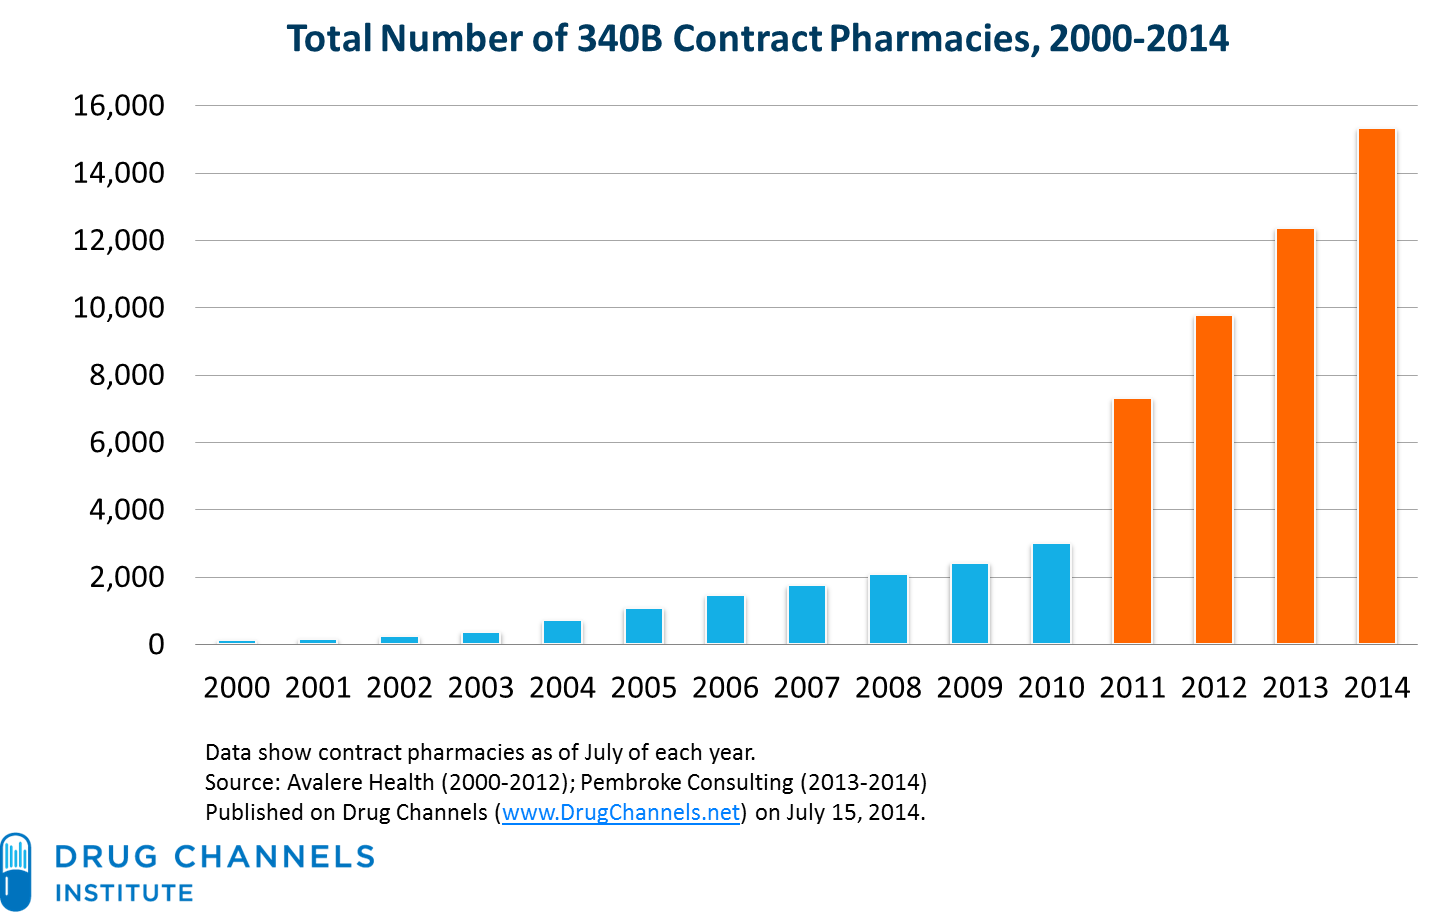 Drug Channels One In Four U S Pharmacies Is Now A 340b Contract Pharmacy Healthcare Marketing Pharmacy Writing Services